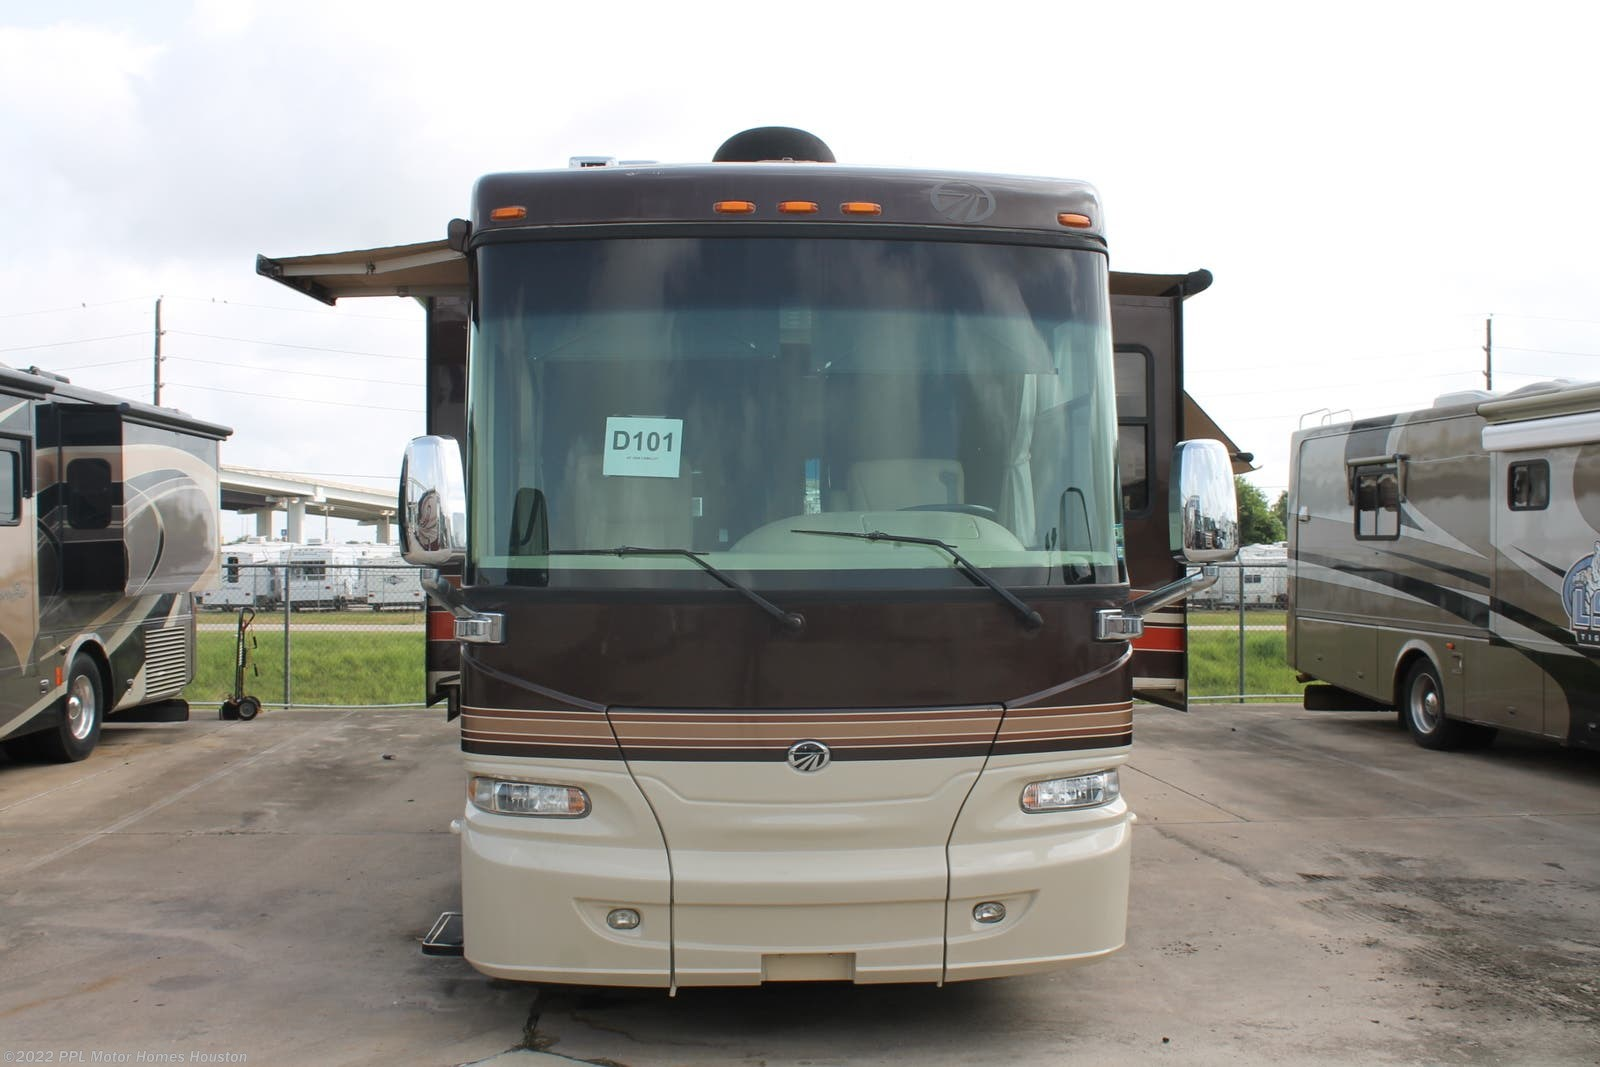 Lp Gas Cooktops For Rv On Sale Now Ppl Motor Homes >> 2008 Monaco Rv Rv Camelot 42pdq For Sale In Houston Tx 77074 D101